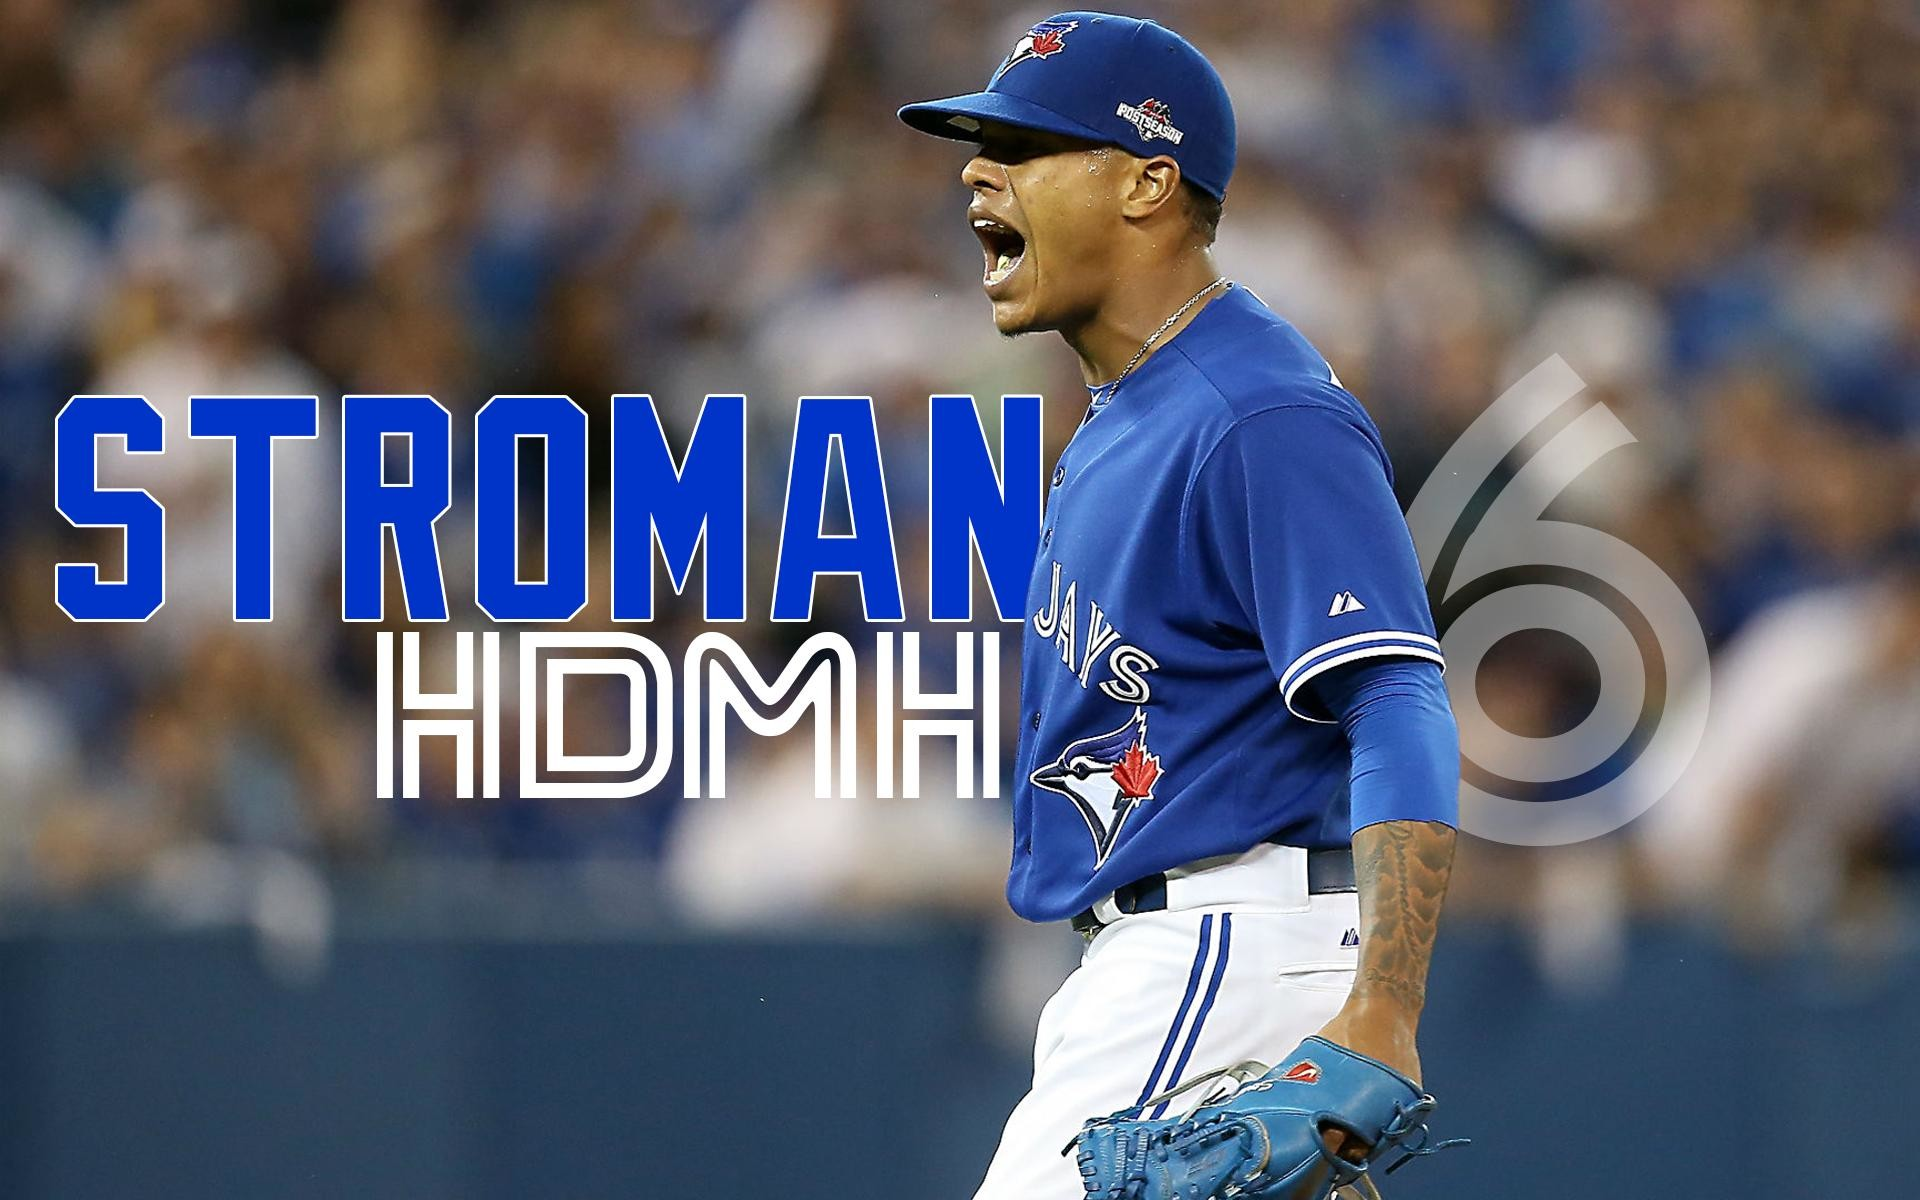 1920x1200 Marcus Stroman HDMH Blue Jays Wallpaper